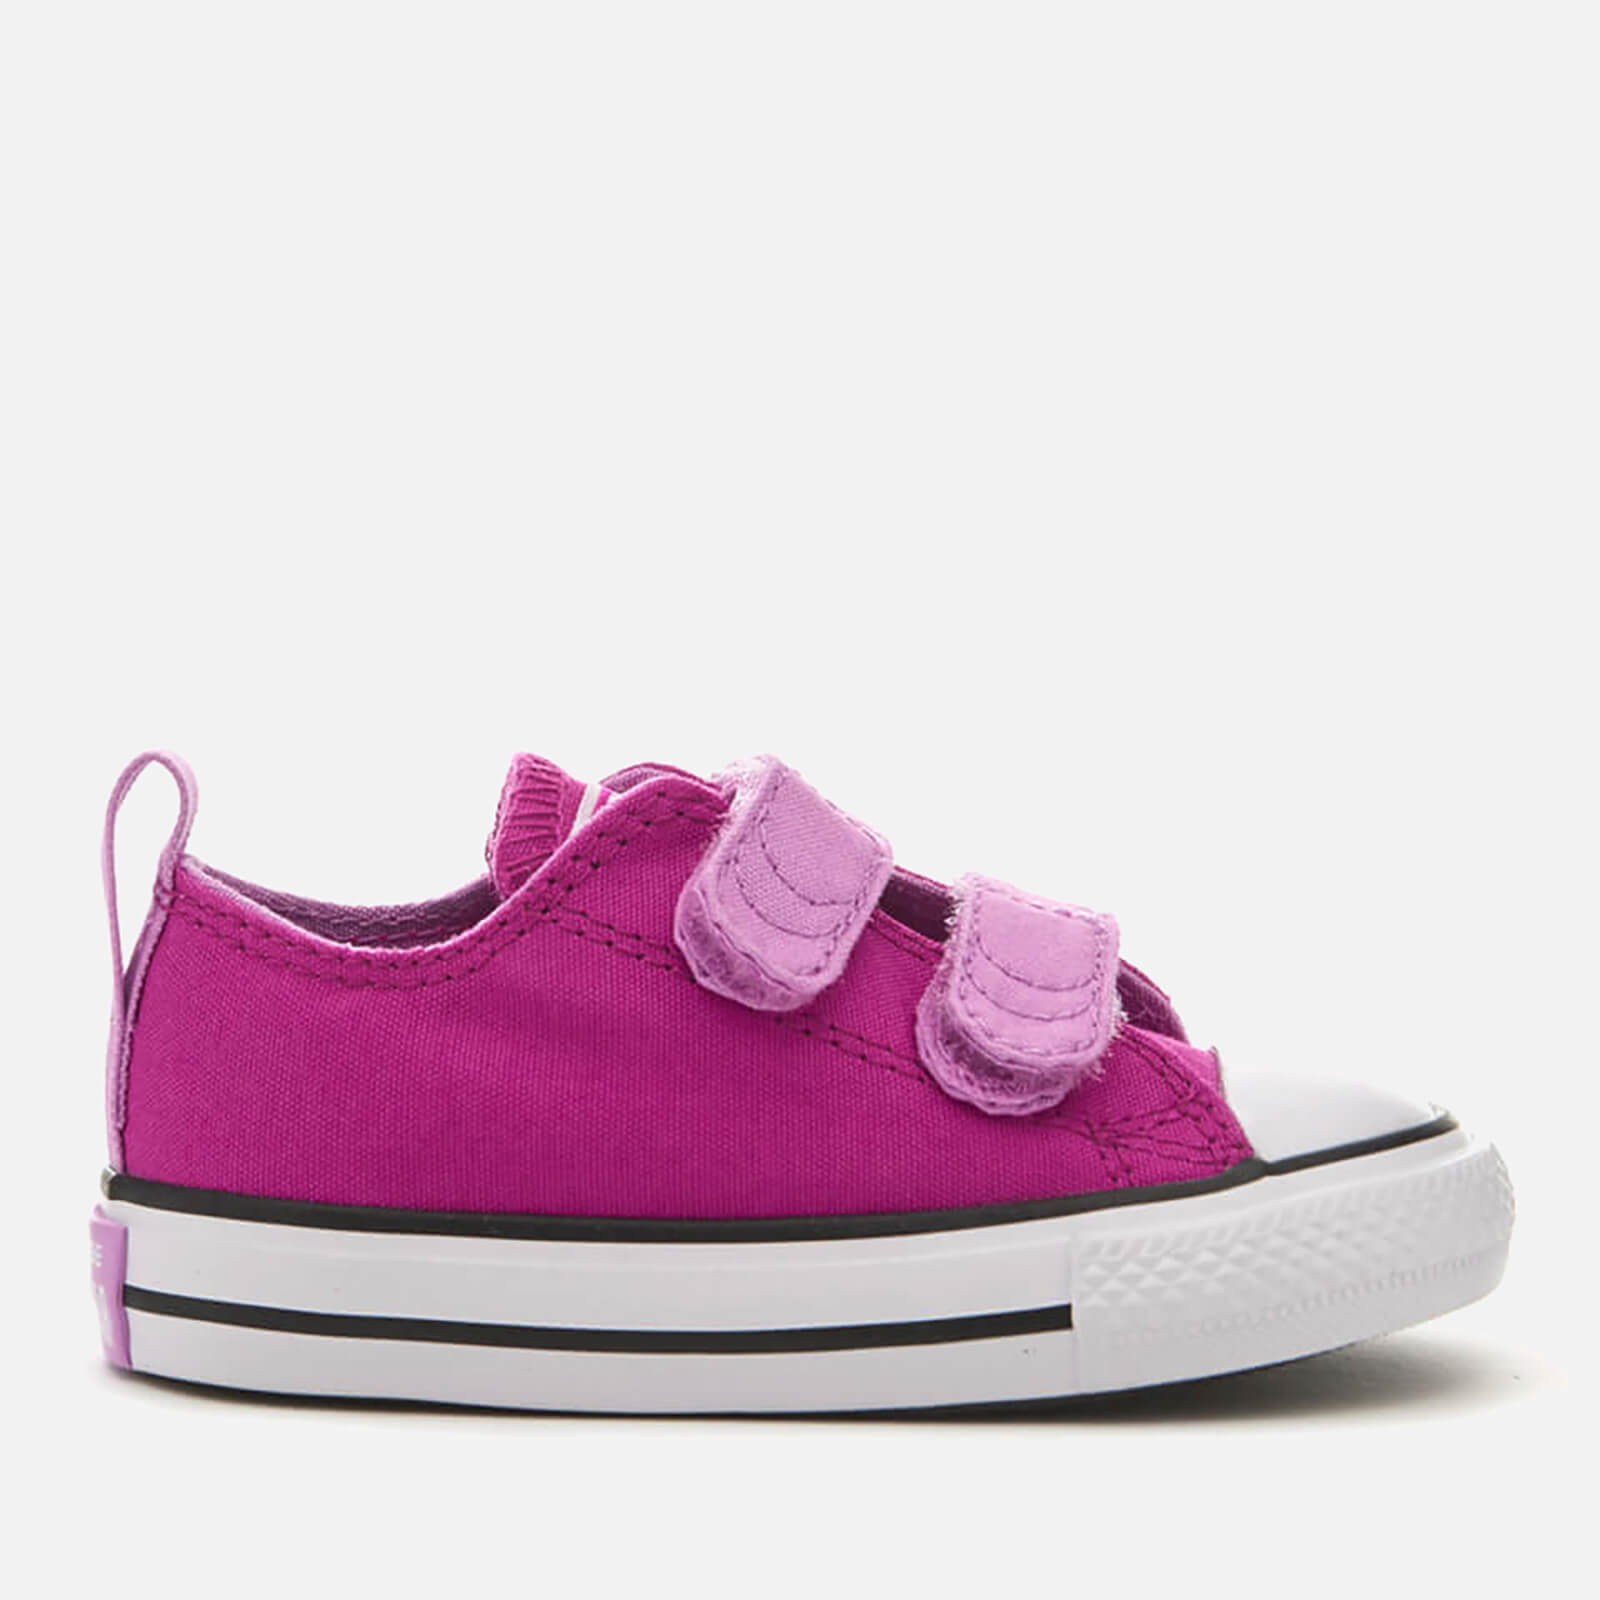 d9bc2728ddd066 Converse Toddlers  Chuck Taylor All Star 2V Ox Trainers - Magenta Glow Fuchsia  Glow White Junior Clothing